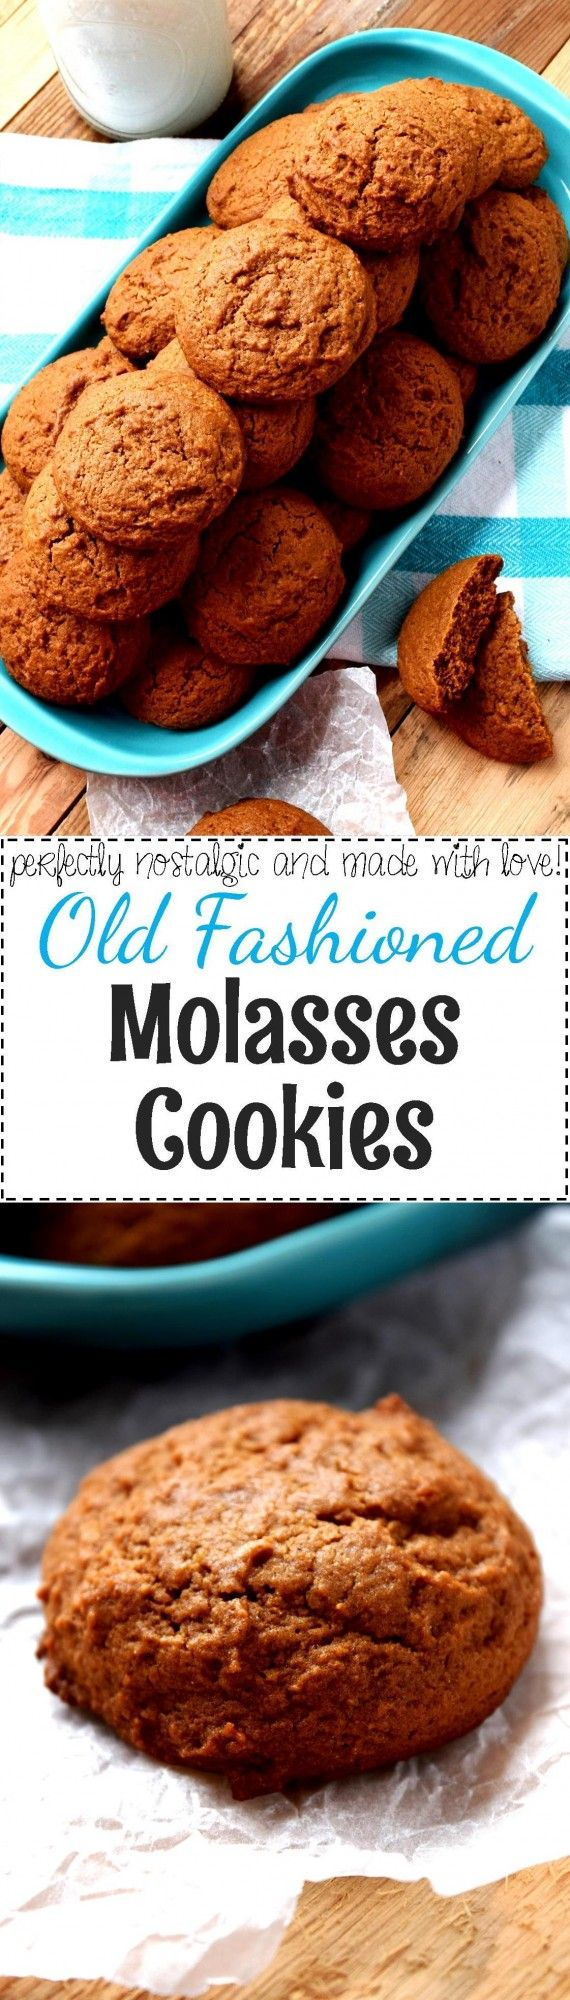 Old Fashioned Molasses Cookies - Lord Byron's Kitchen